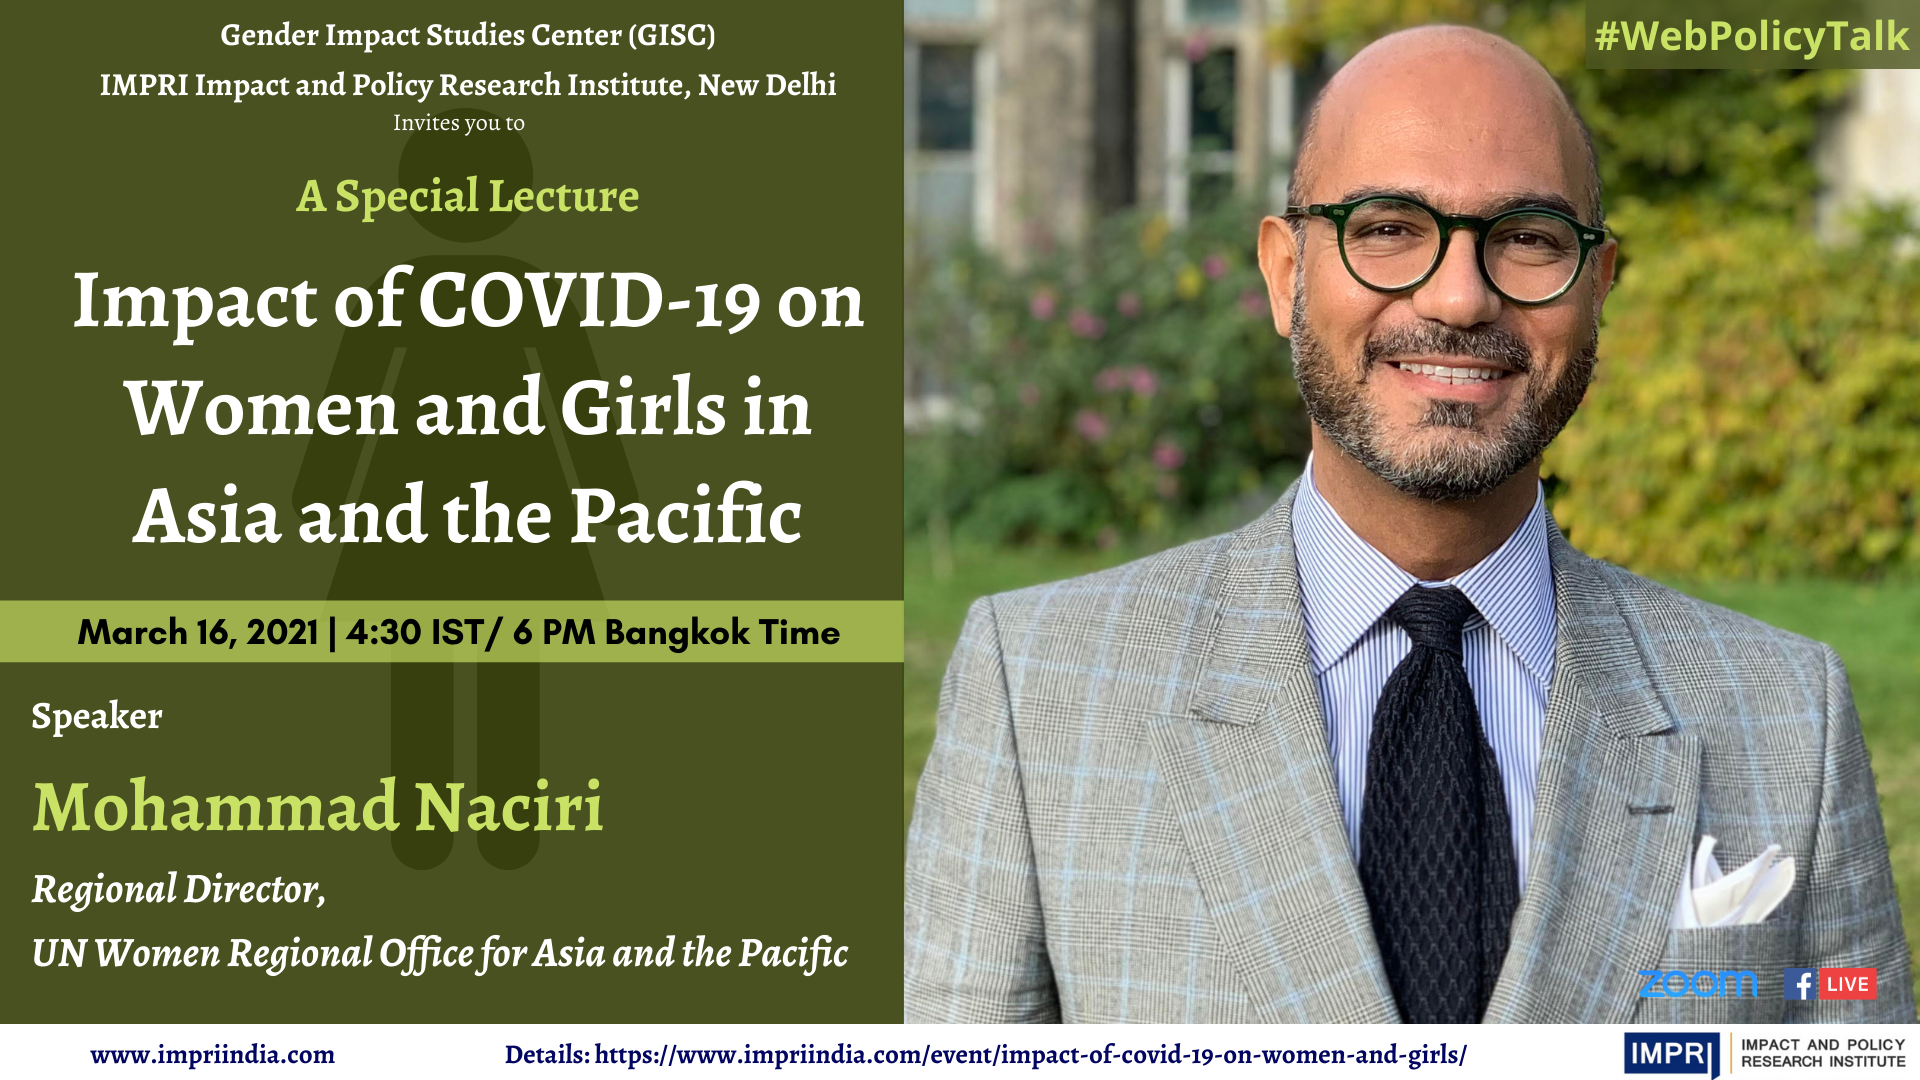 Impact of COVID-19 on Women and Girls in Asia and the Pacific